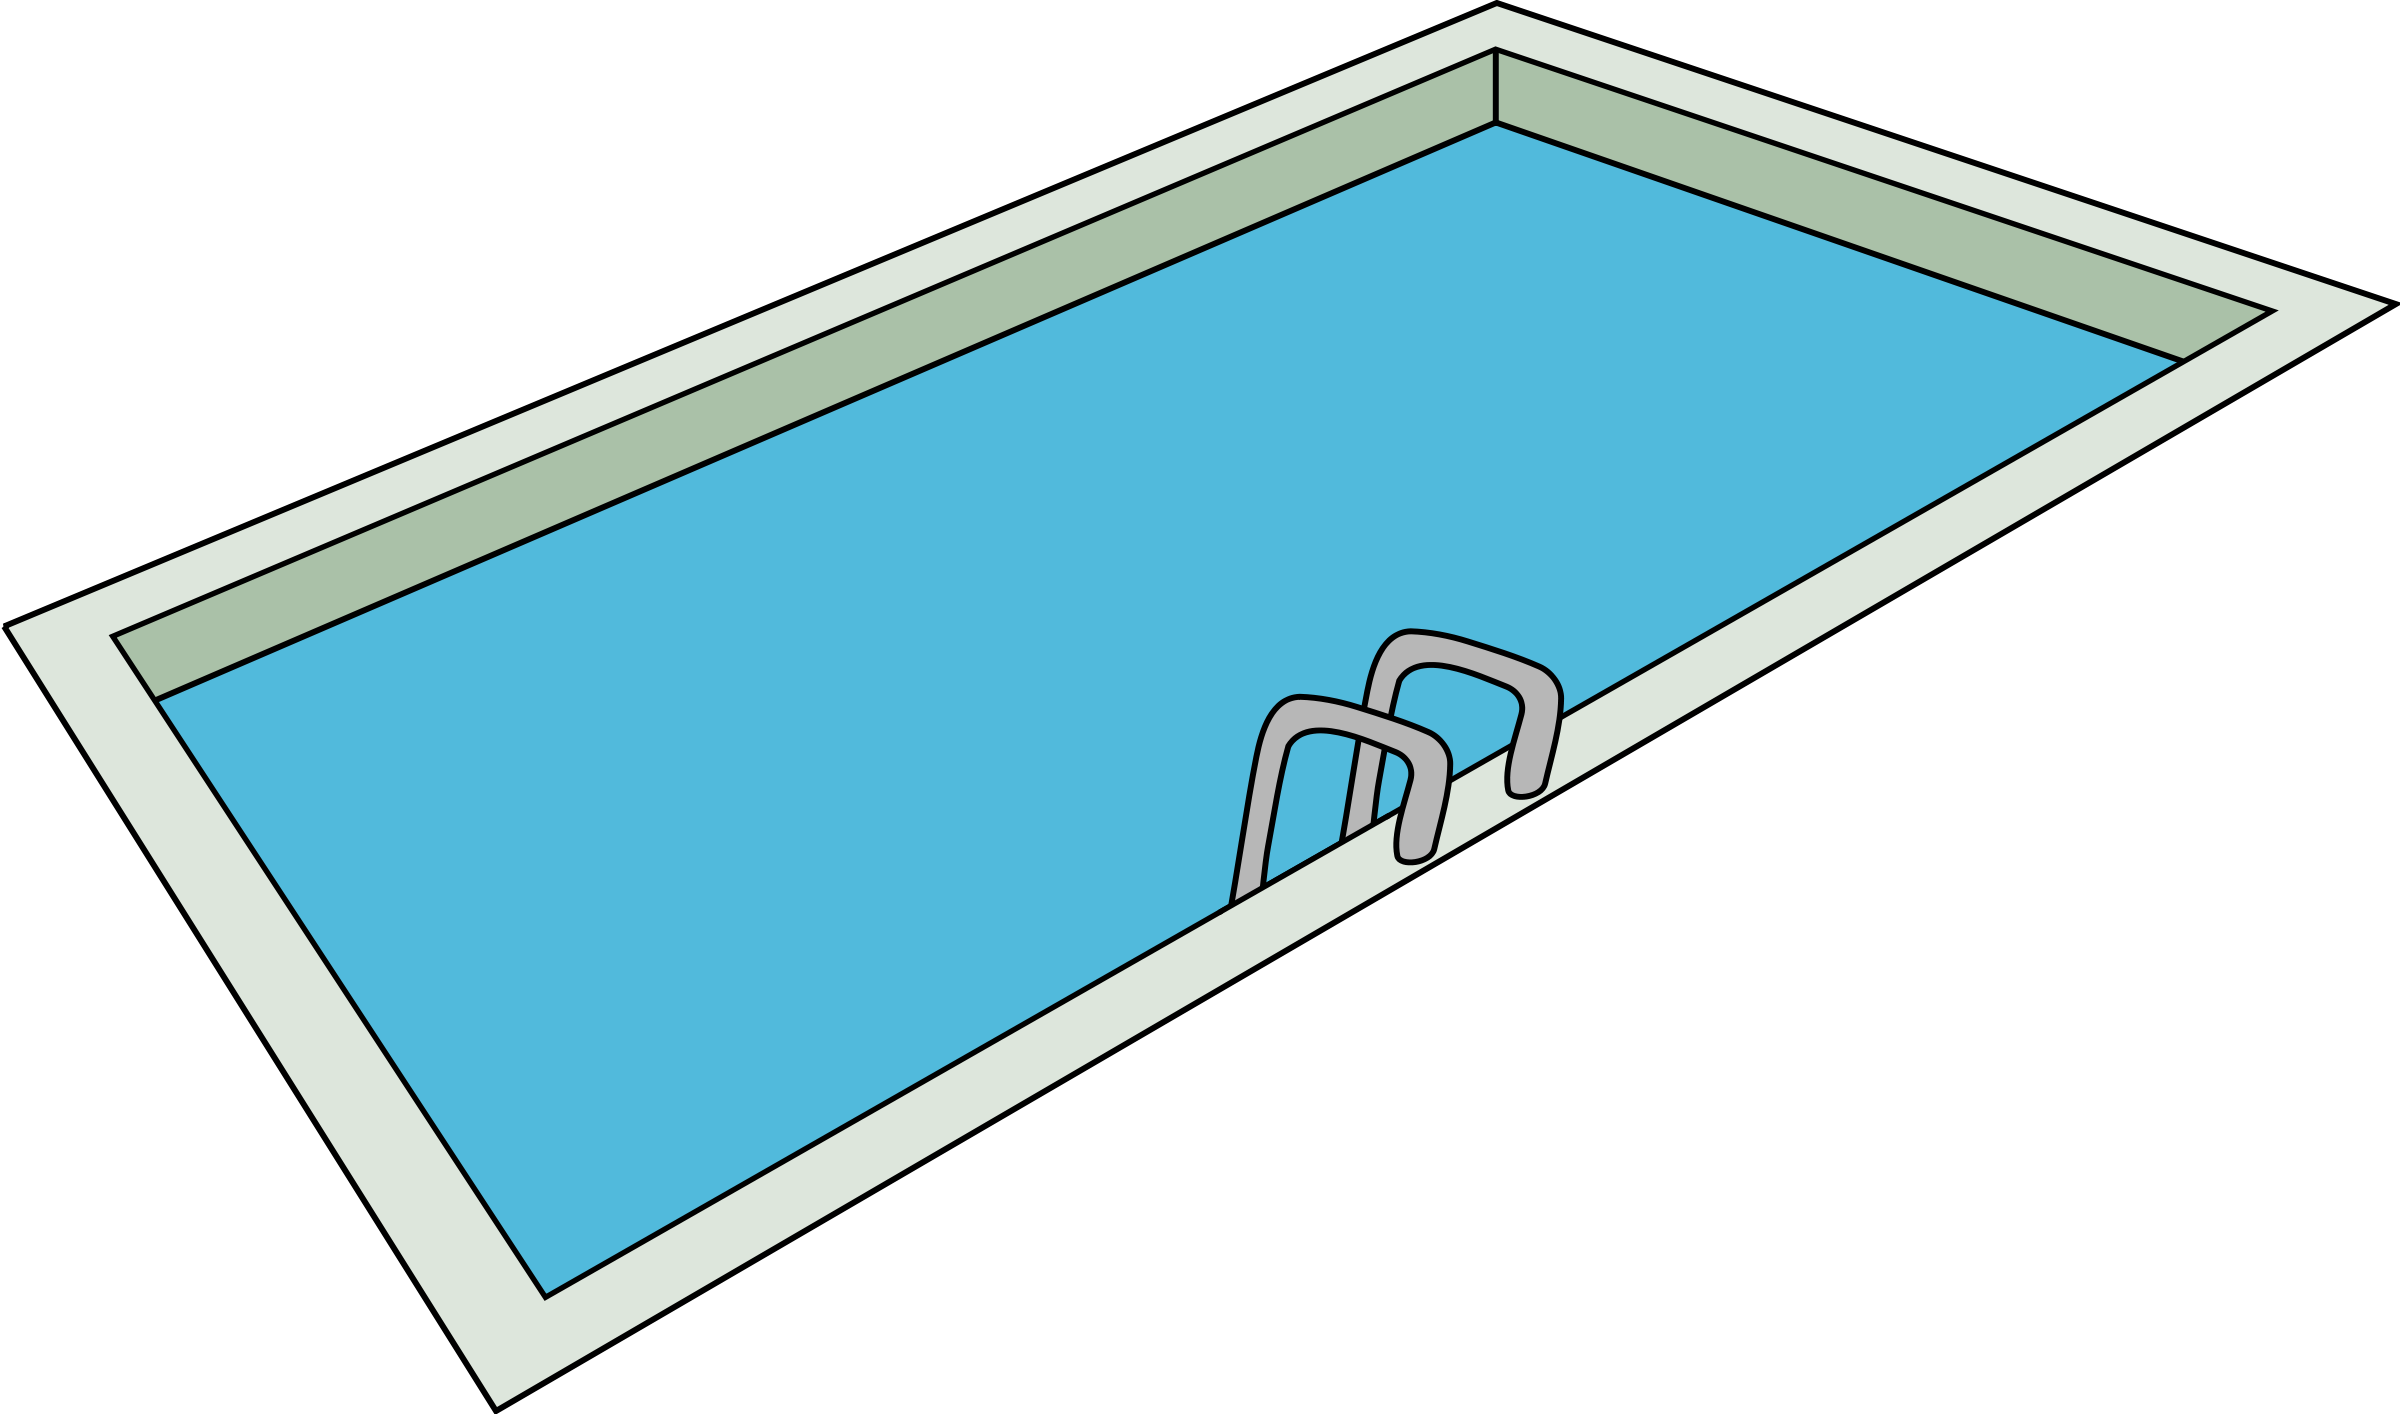 Pool Clipart-pool clipart-12